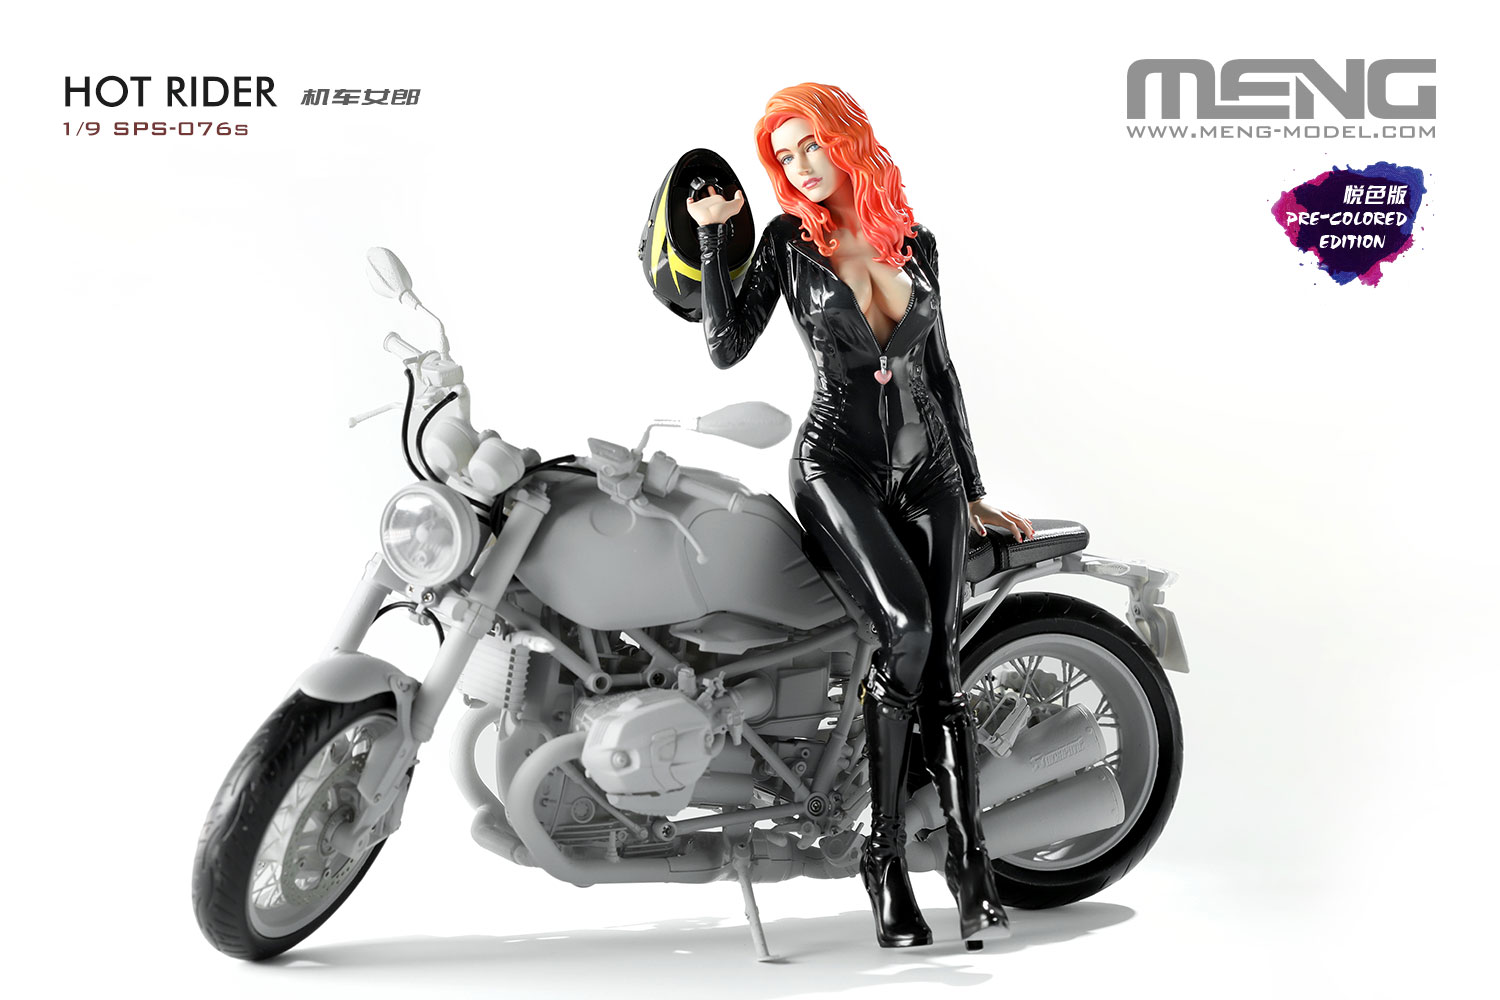 Meng 1/9 Hot Rider (Resin) (Pre-colored Edition, Assembled Figure)